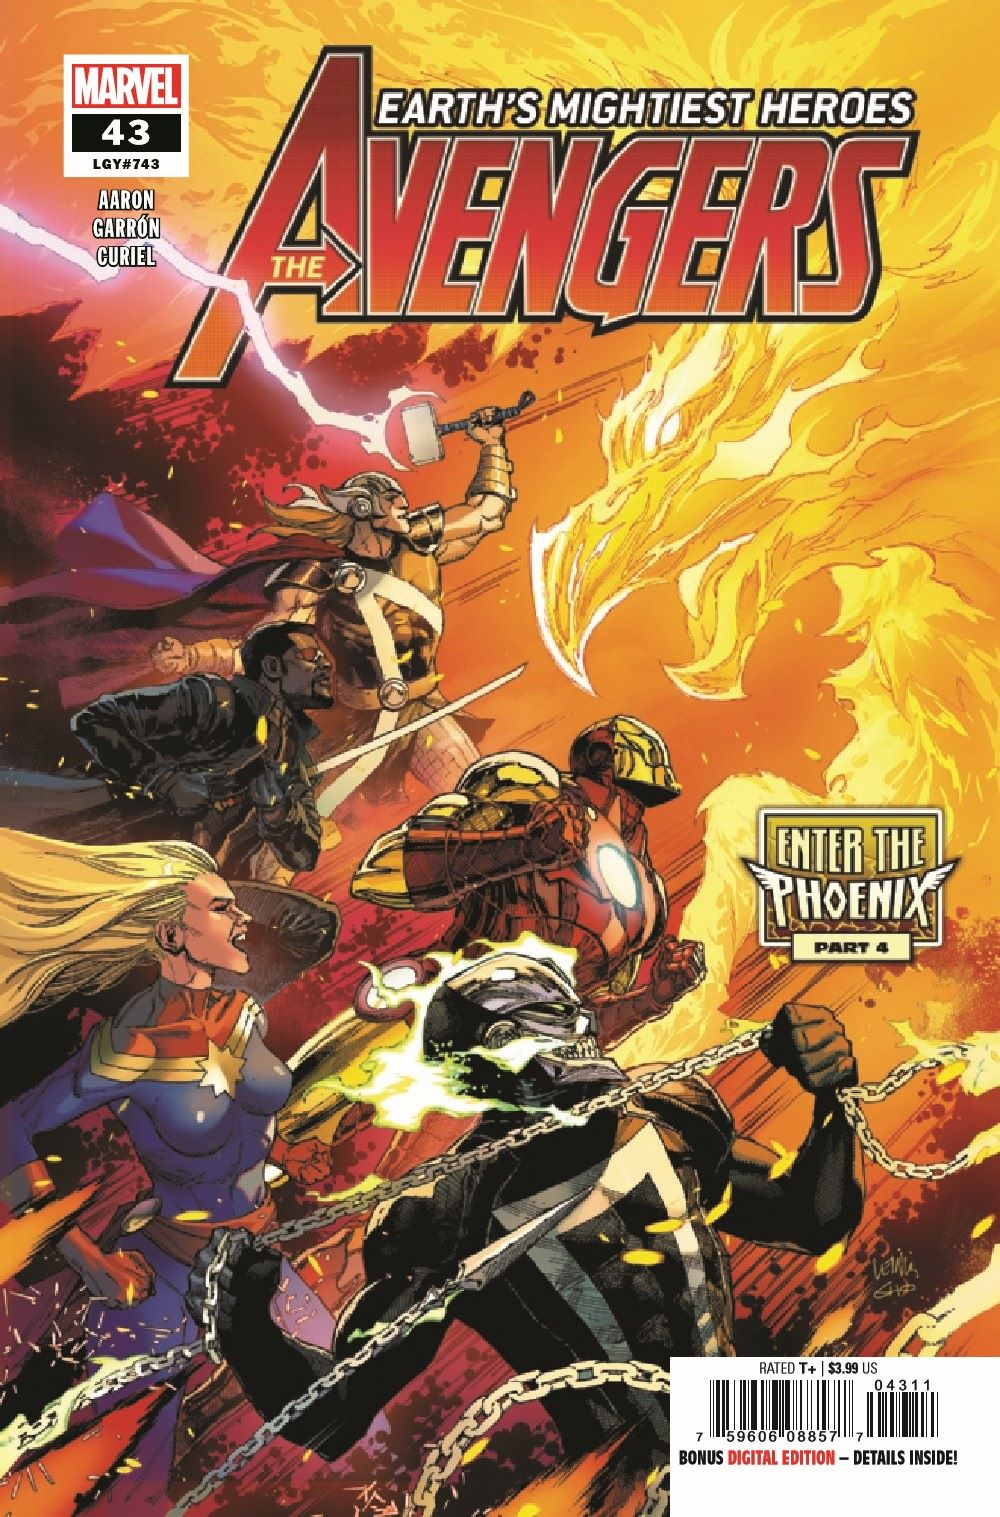 AVEN2018043_Preview-1 ComicList Previews: THE AVENGERS #43